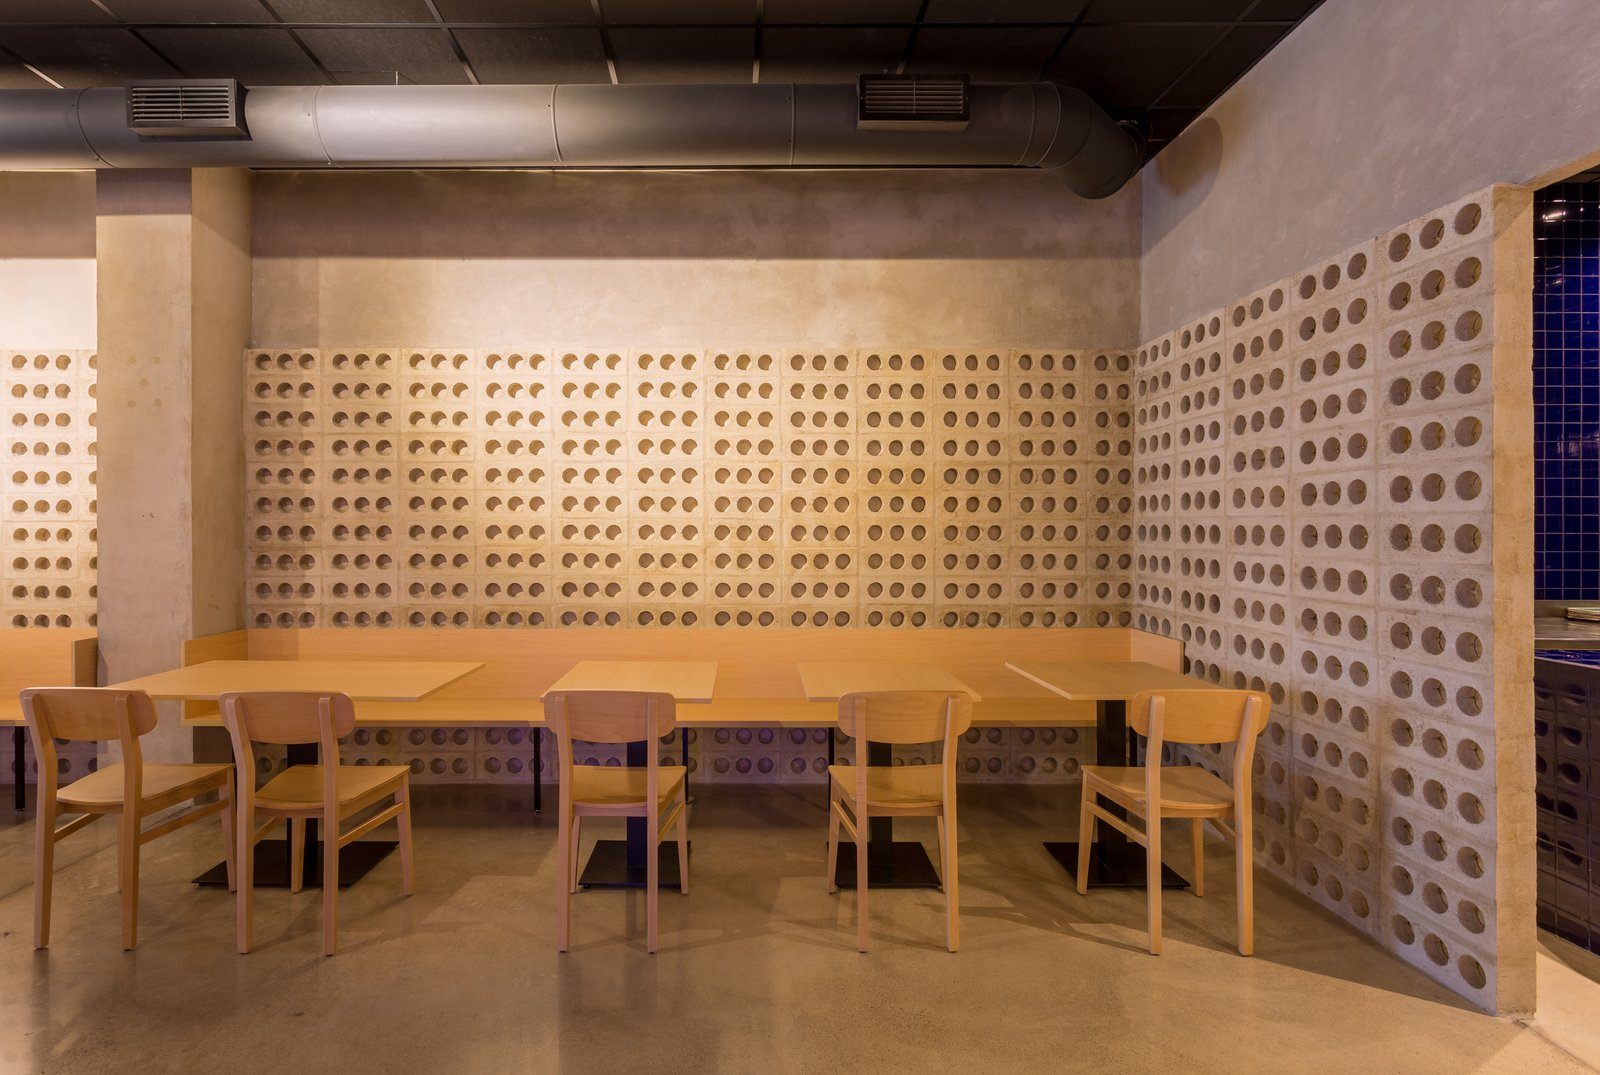 Dining Room, Track Lighting, Chair, Concrete Floor, Table, Bench, and Ceiling Lighting The wooden furniture contrasts with the roughness of the cement.  IMOOD Restaurant